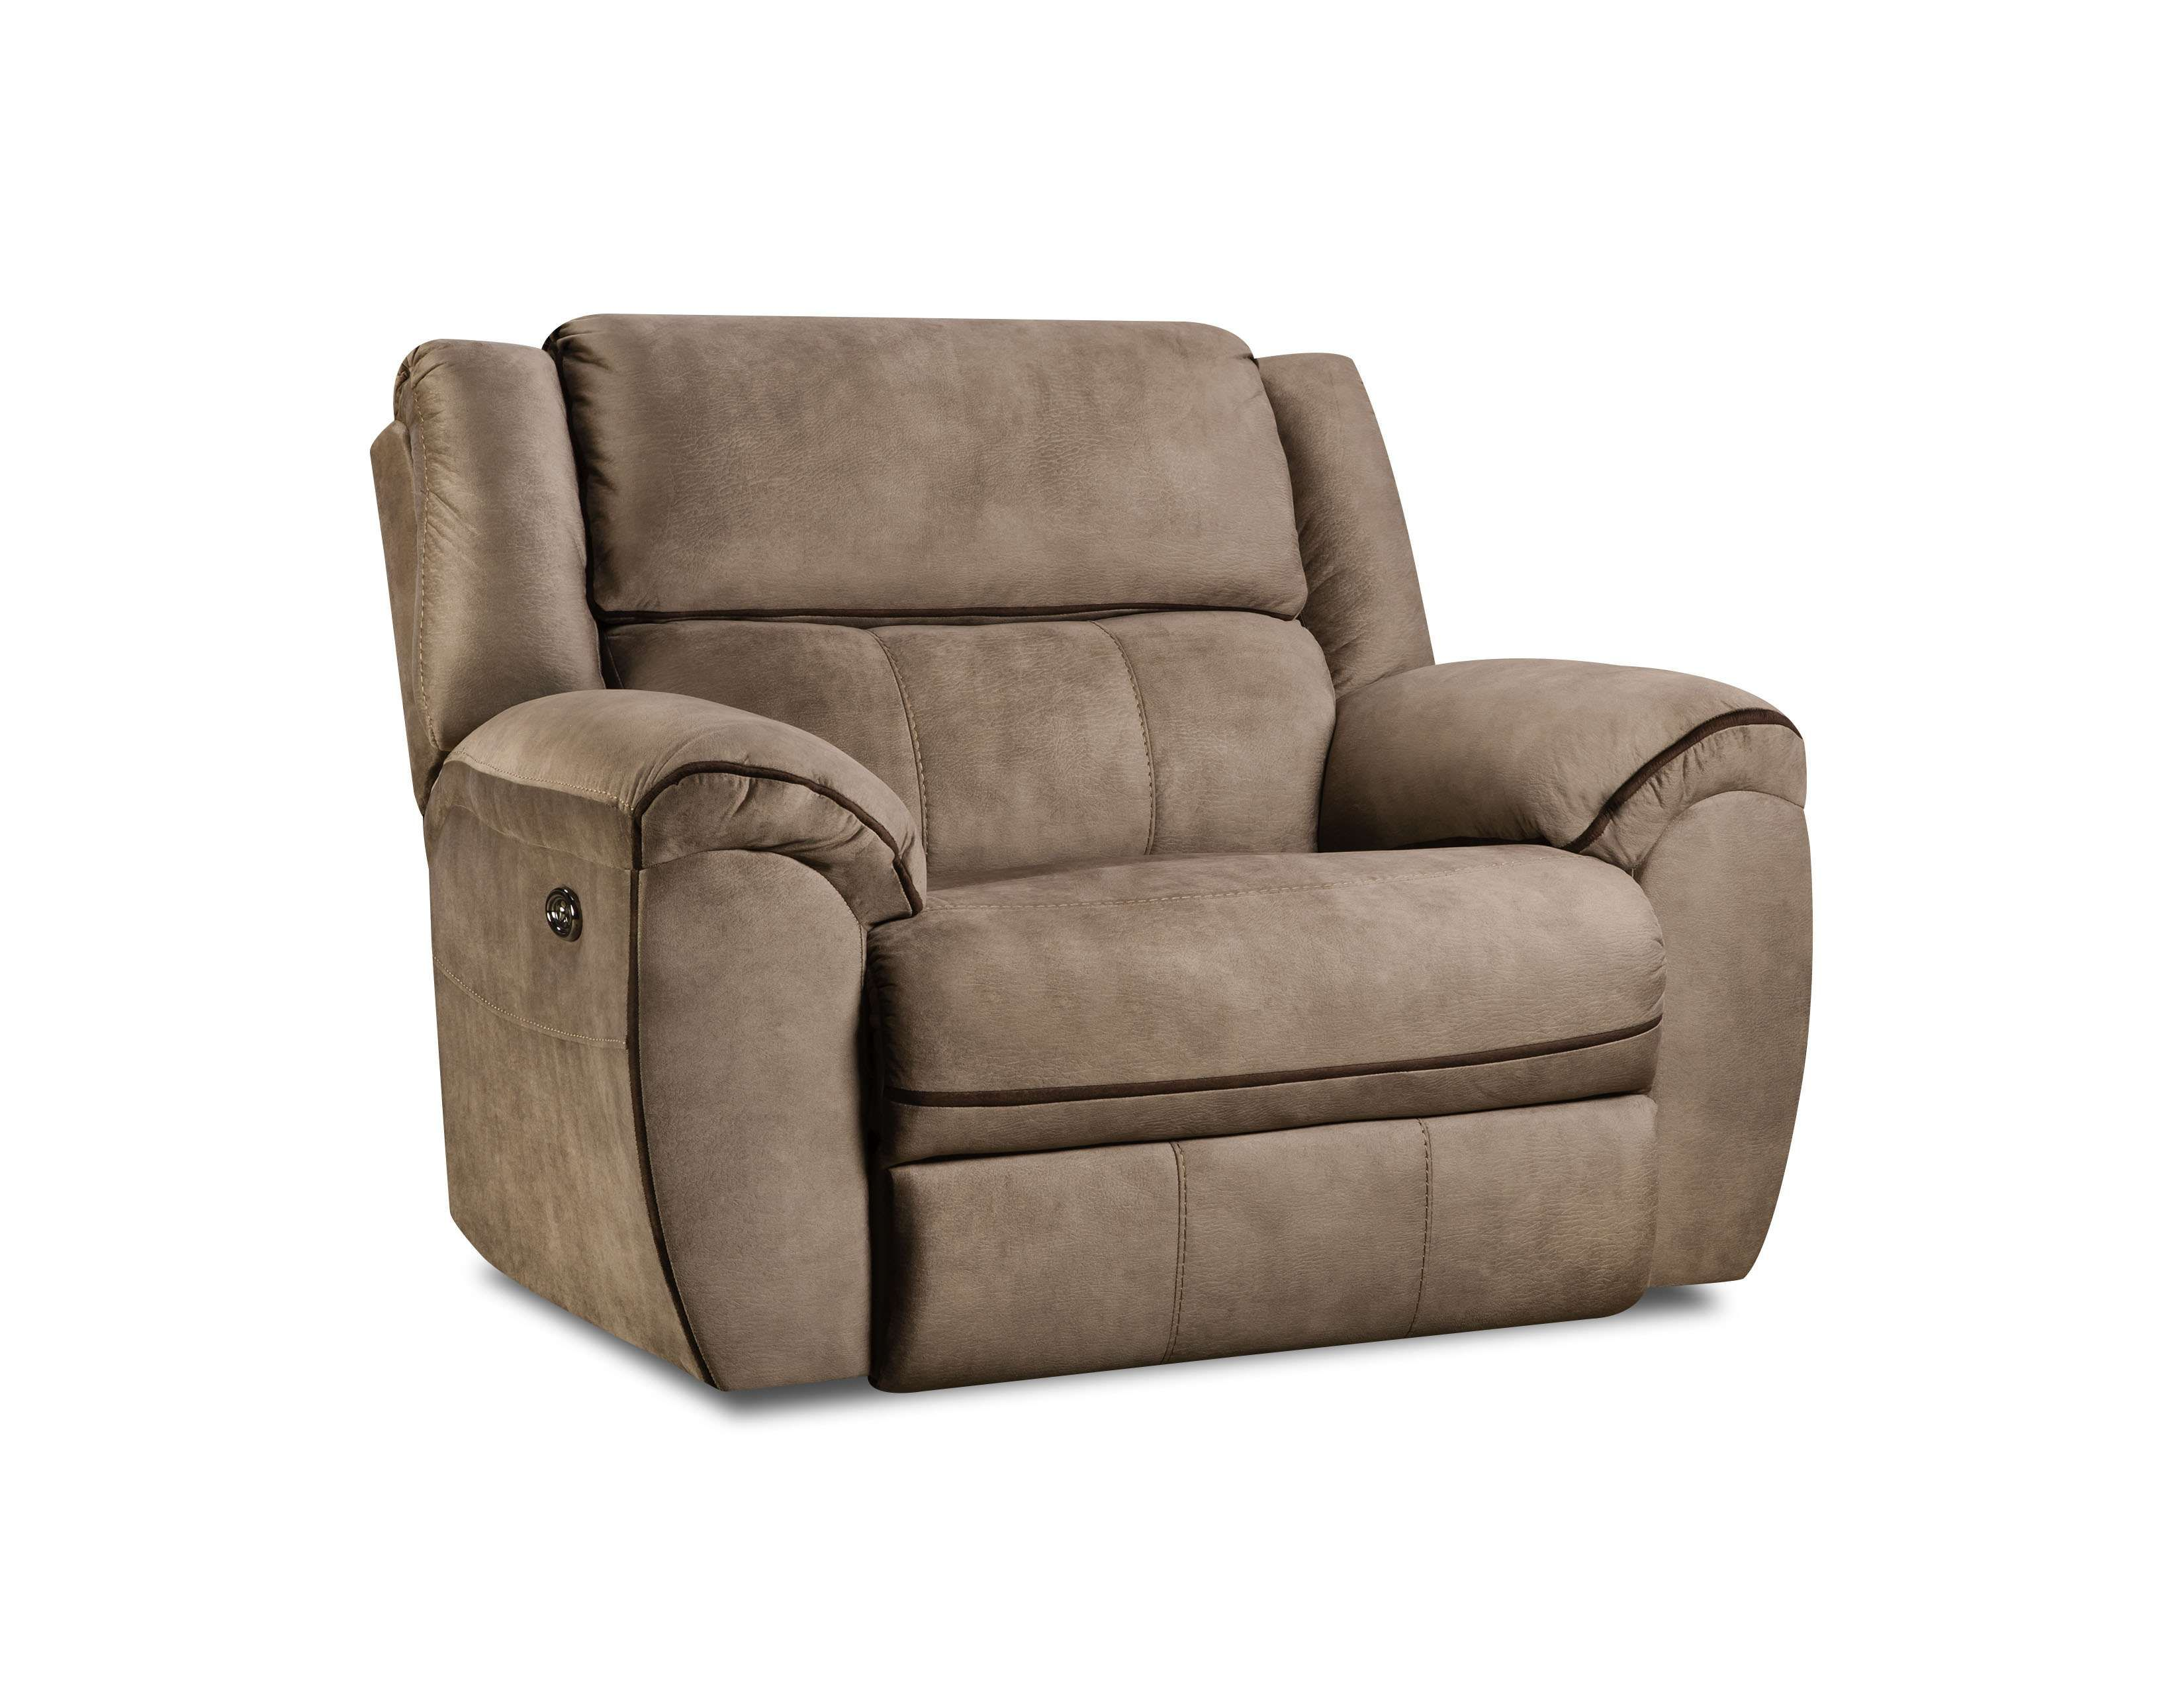 Simmons Upholstery Osborn Tan Cuddler Recliner Reviews